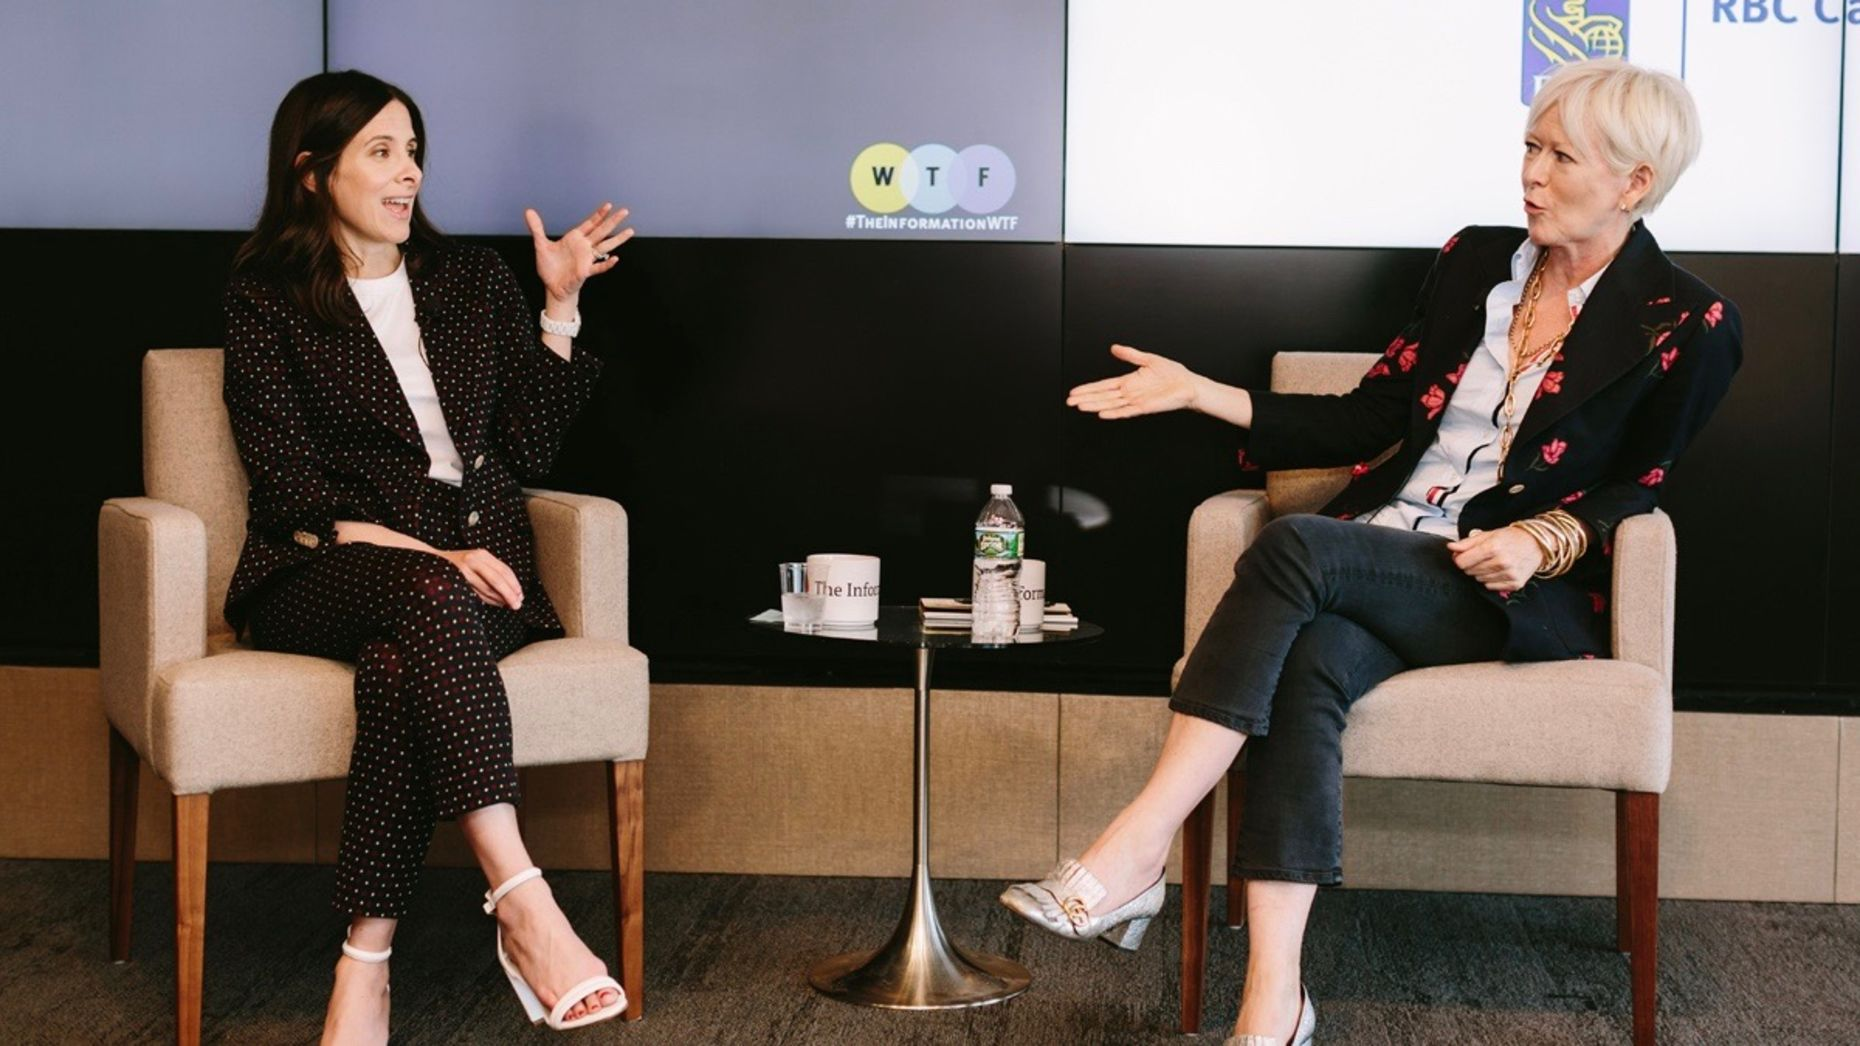 Former Hearst executive Joanna Coles, on the right, talking to The Information Editor in Chief Jessica Lessin in an on-stage interview at The Information's WTF event on Tuesday. Photo by Karen Obrist